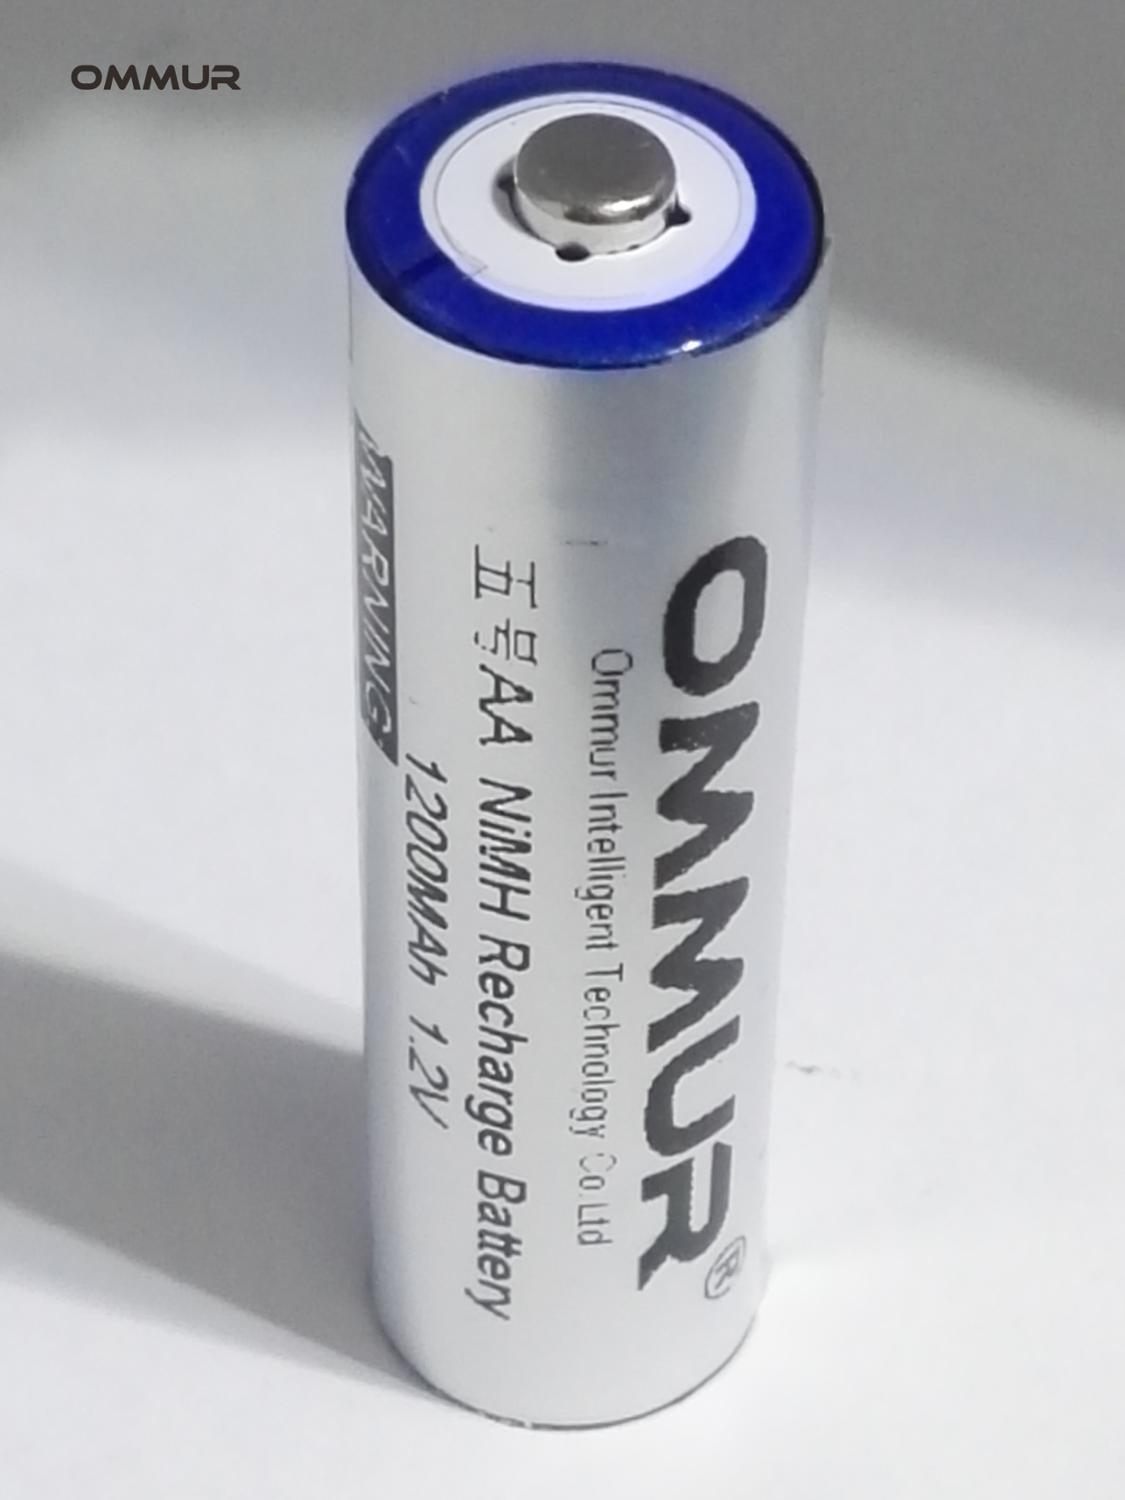 OMMUR <font><b>AA</b></font> <font><b>1.2V</b></font> <font><b>1200mAh</b></font> <font><b>NiMH</b></font> <font><b>battery</b></font> <font><b>Rechargeable</b></font> for flashlight headlamp electronic toy free shipping image